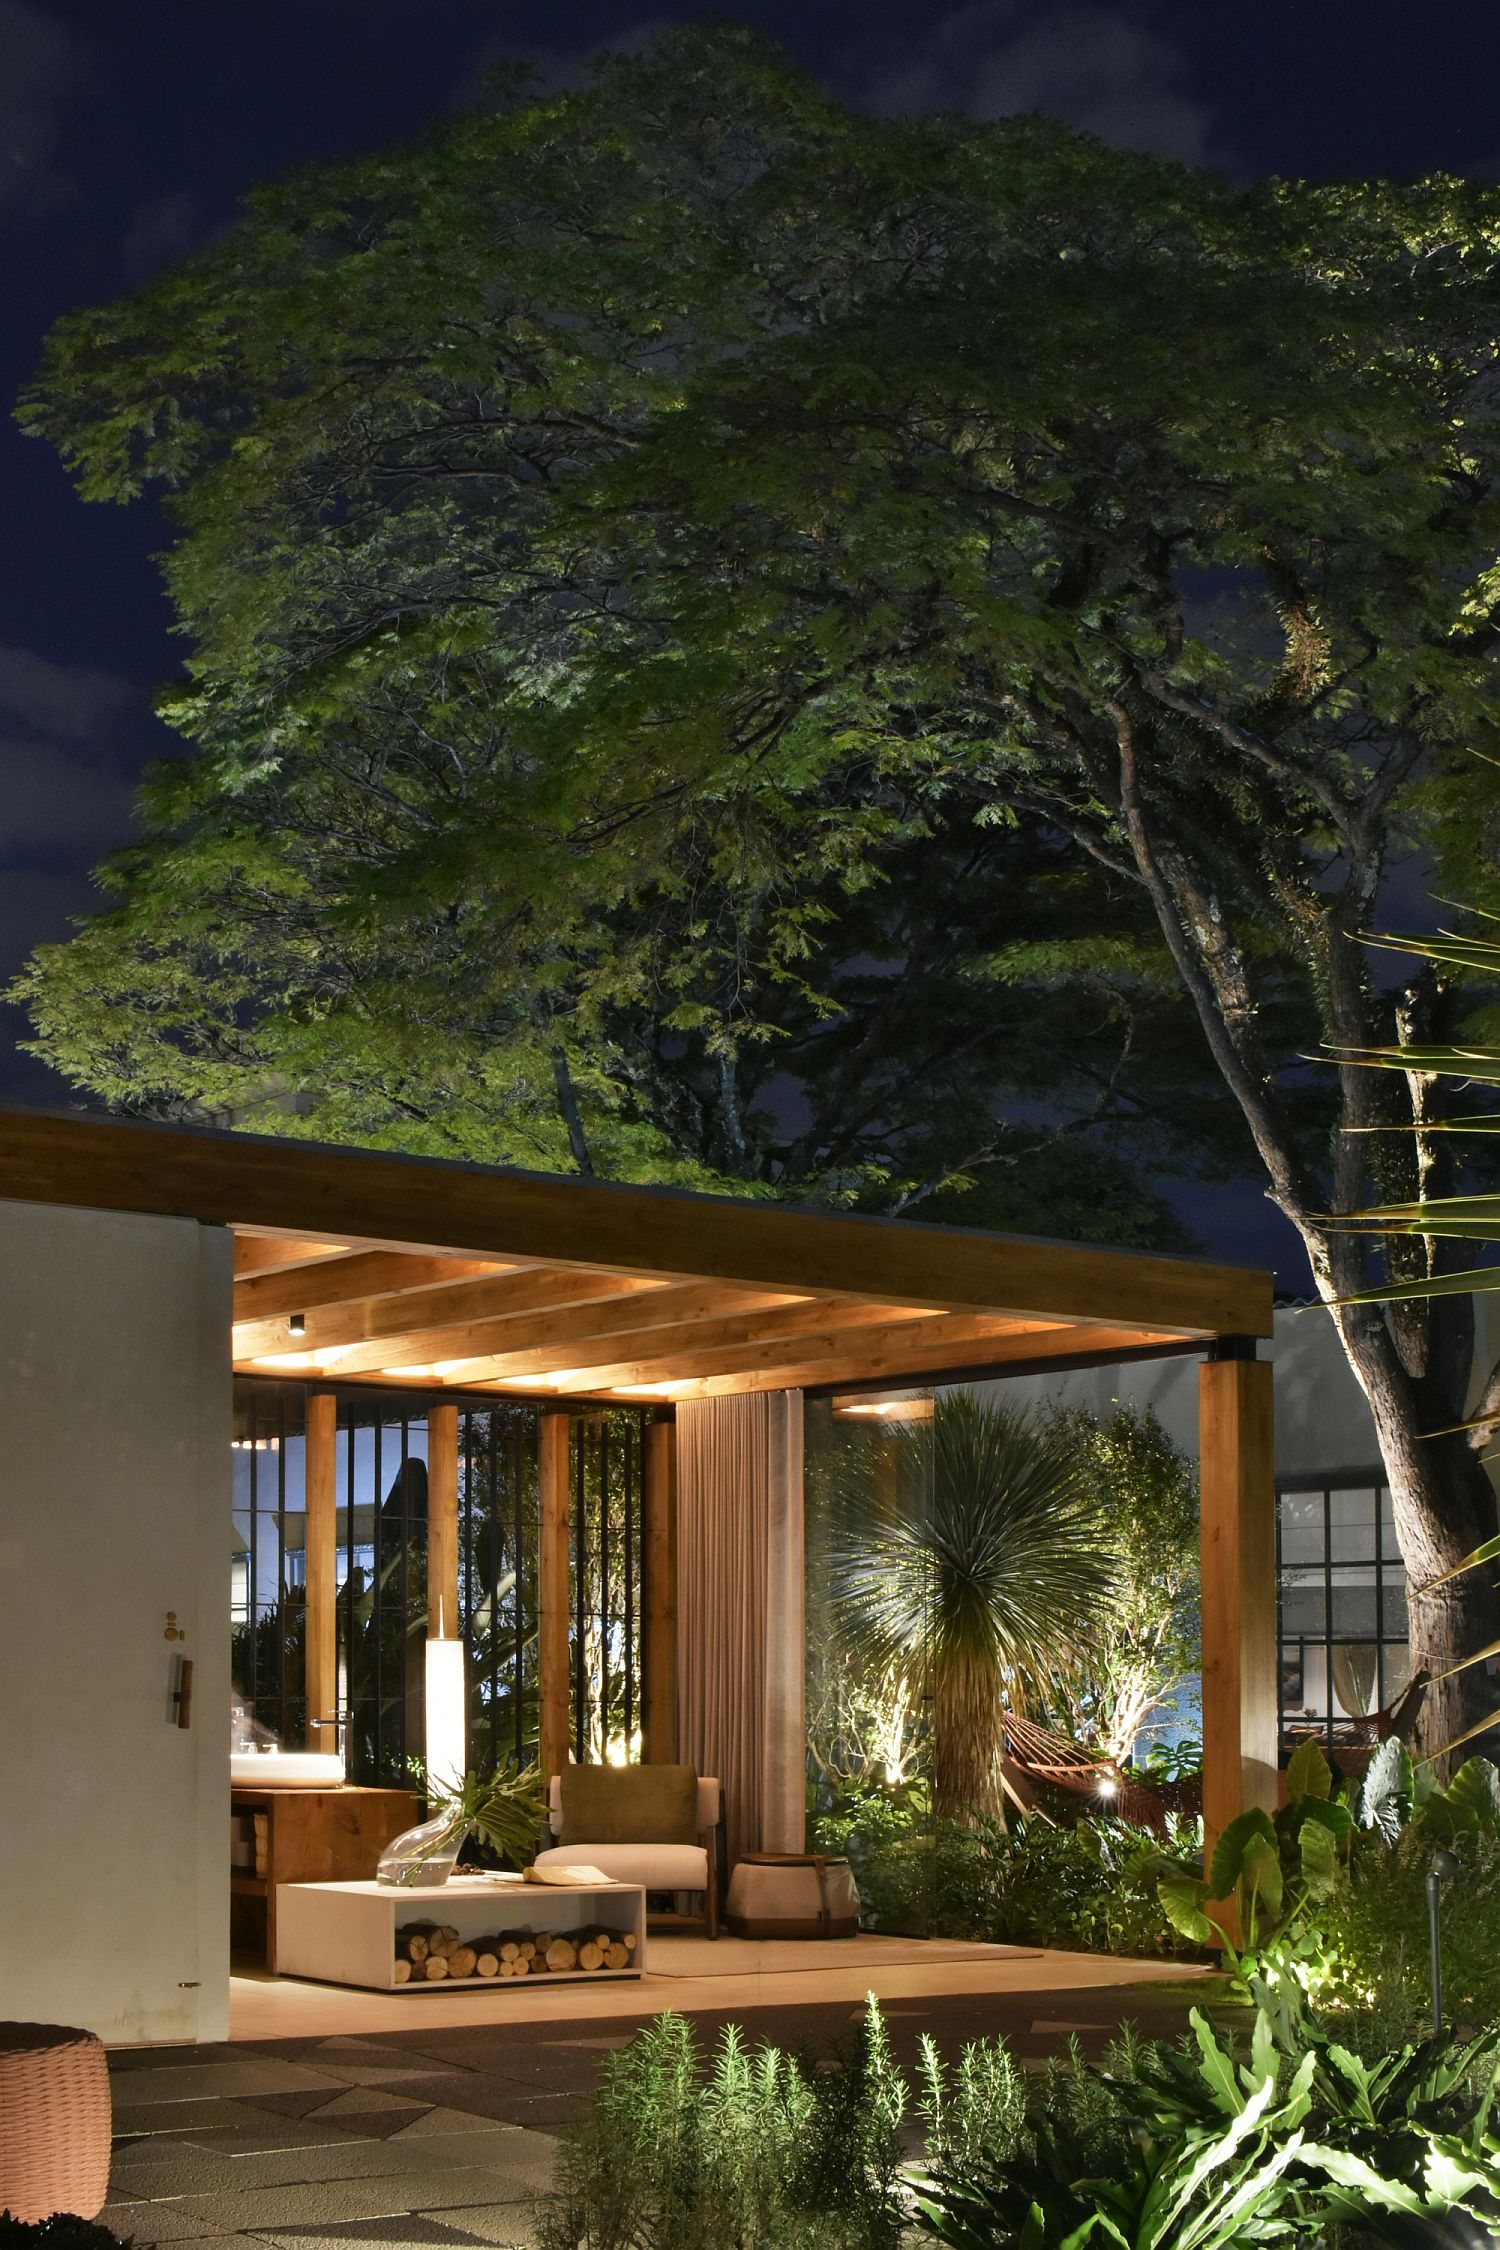 Lighting adds another layer of interest to the terrace